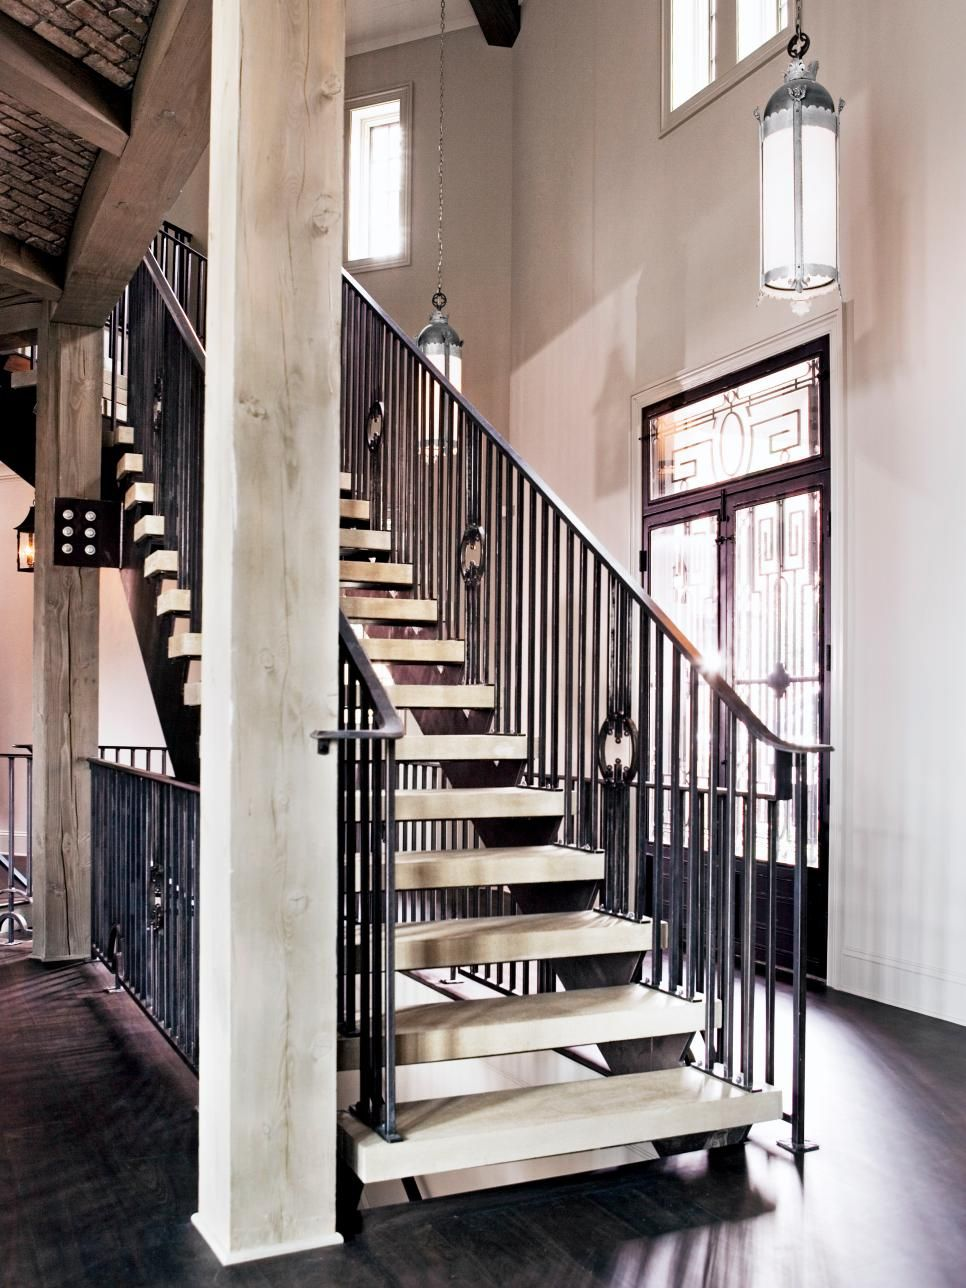 The Wrought Iron Railings Of This Staircase Echo The Decorative